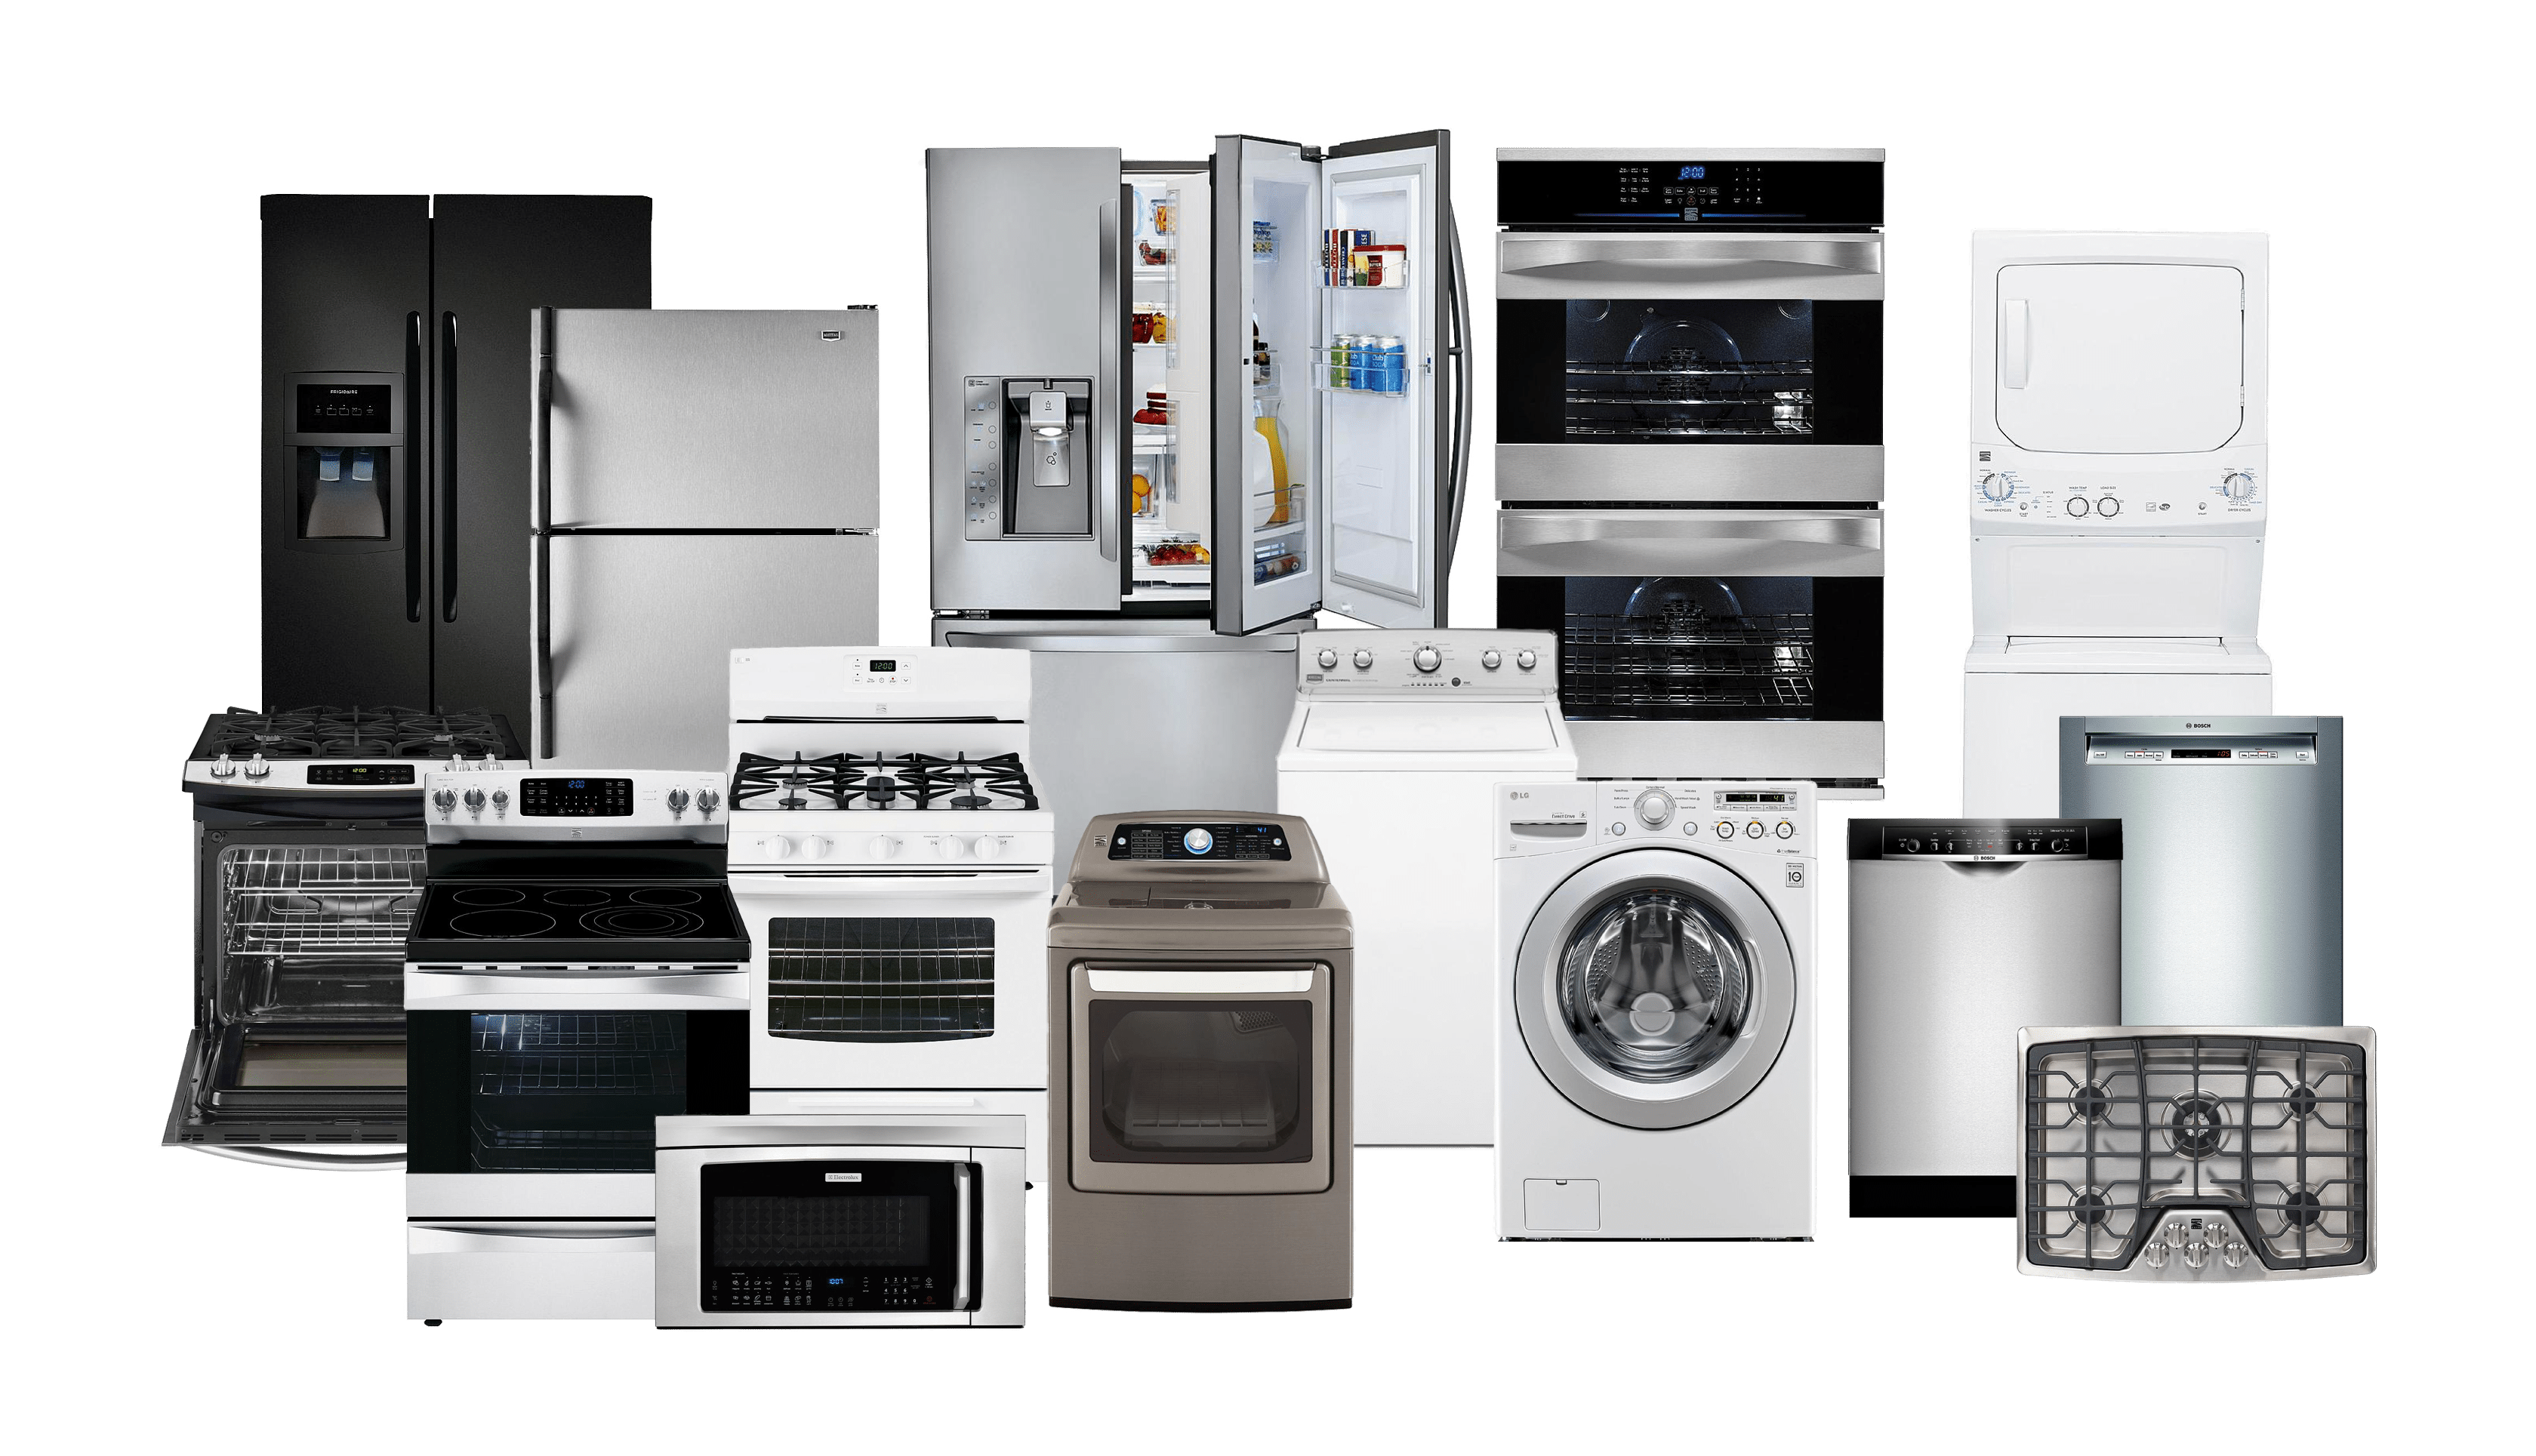 Things to Consider While Hiring Appliance Repair Services